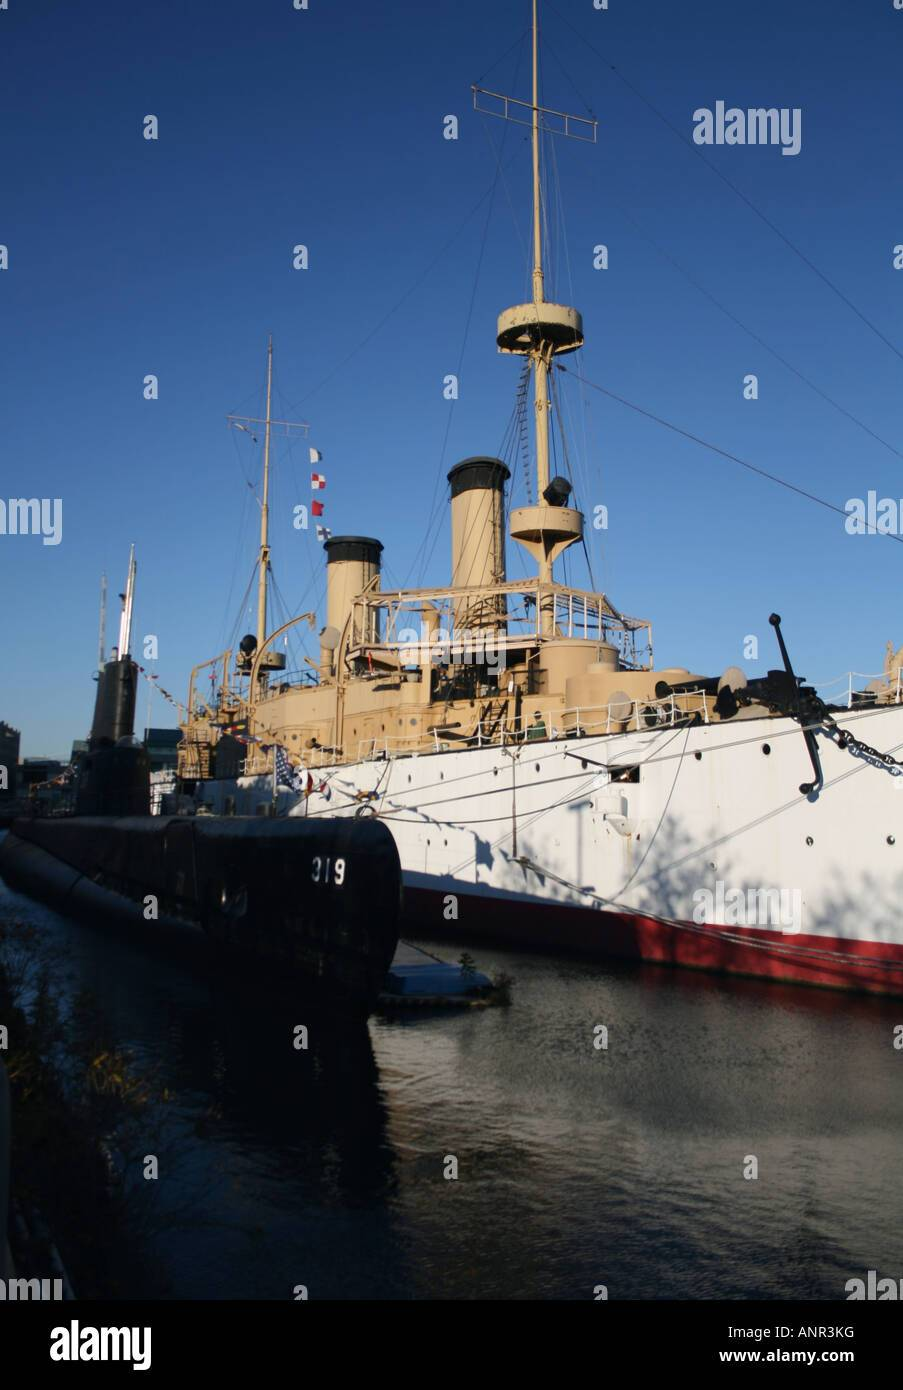 uss becuna and uss olympia at independence seaport museum